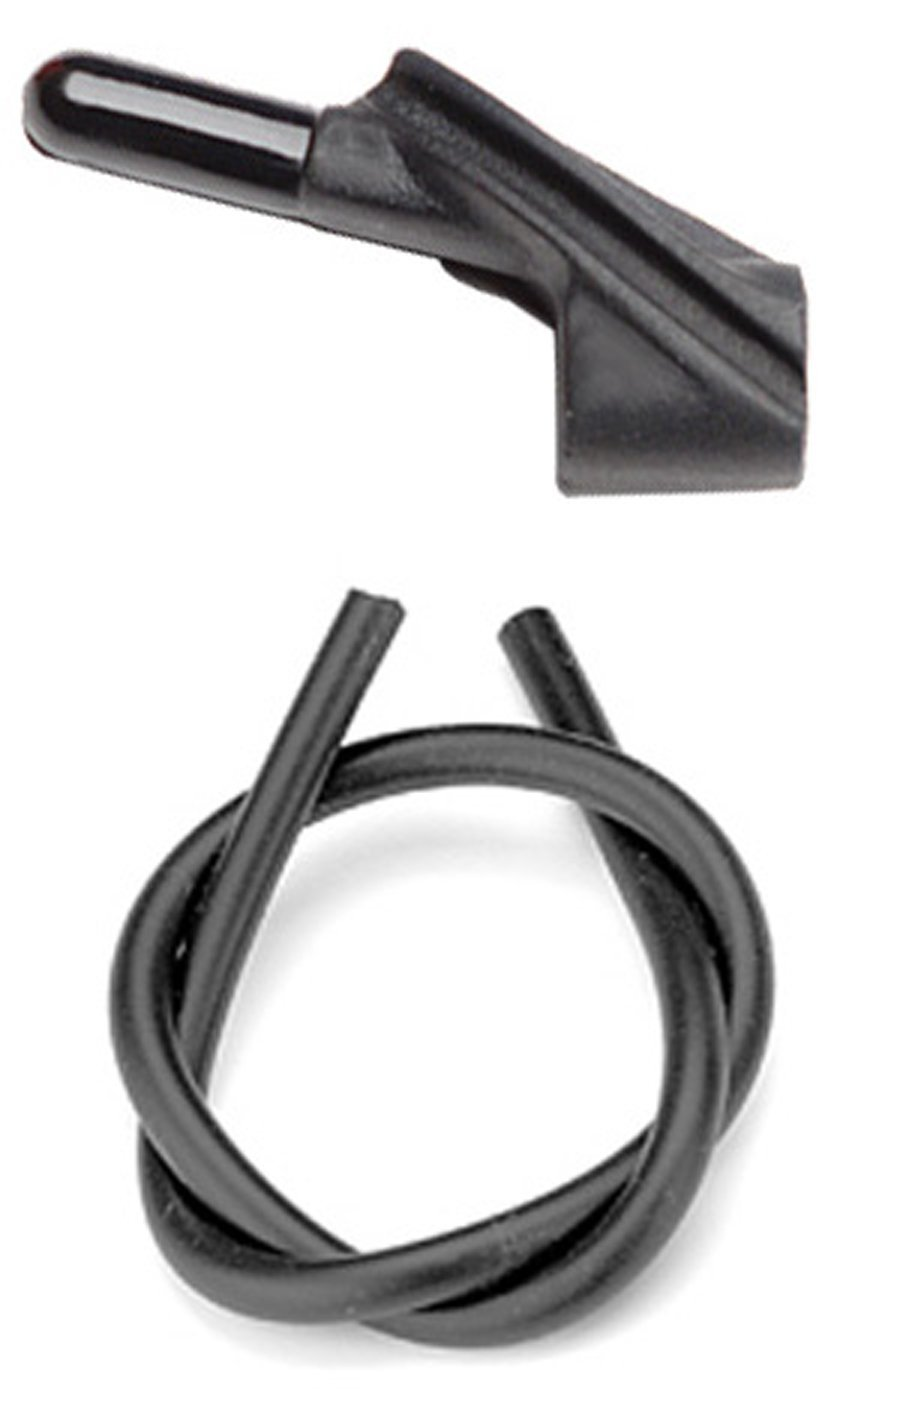 Pine Ridge Archery Nitro Peep Sight